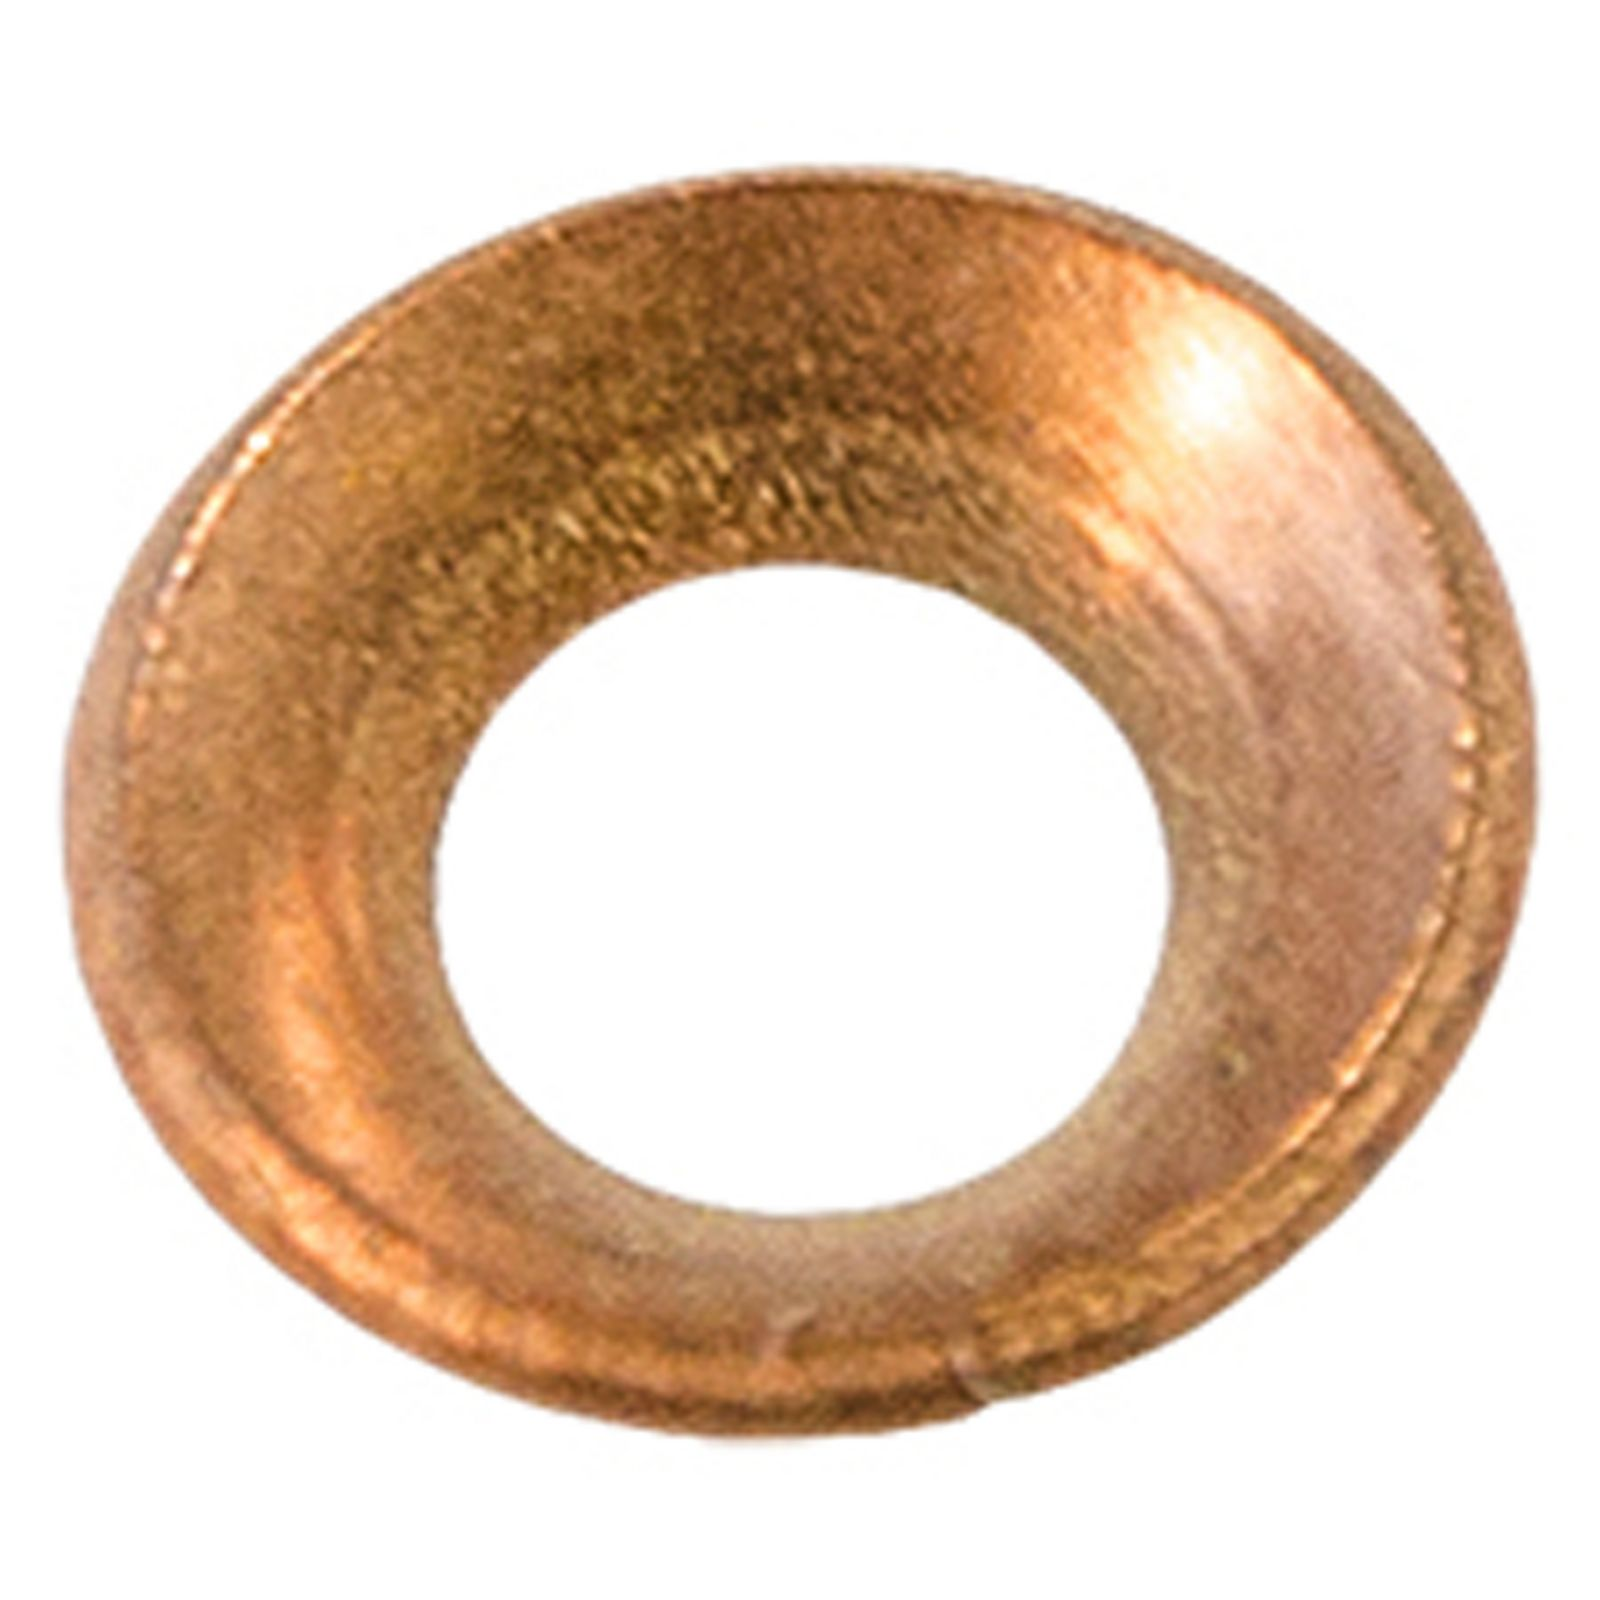 C&D Valve CD0500 - Copper Gasket, For Use With CD2225 Cap. Package of 10